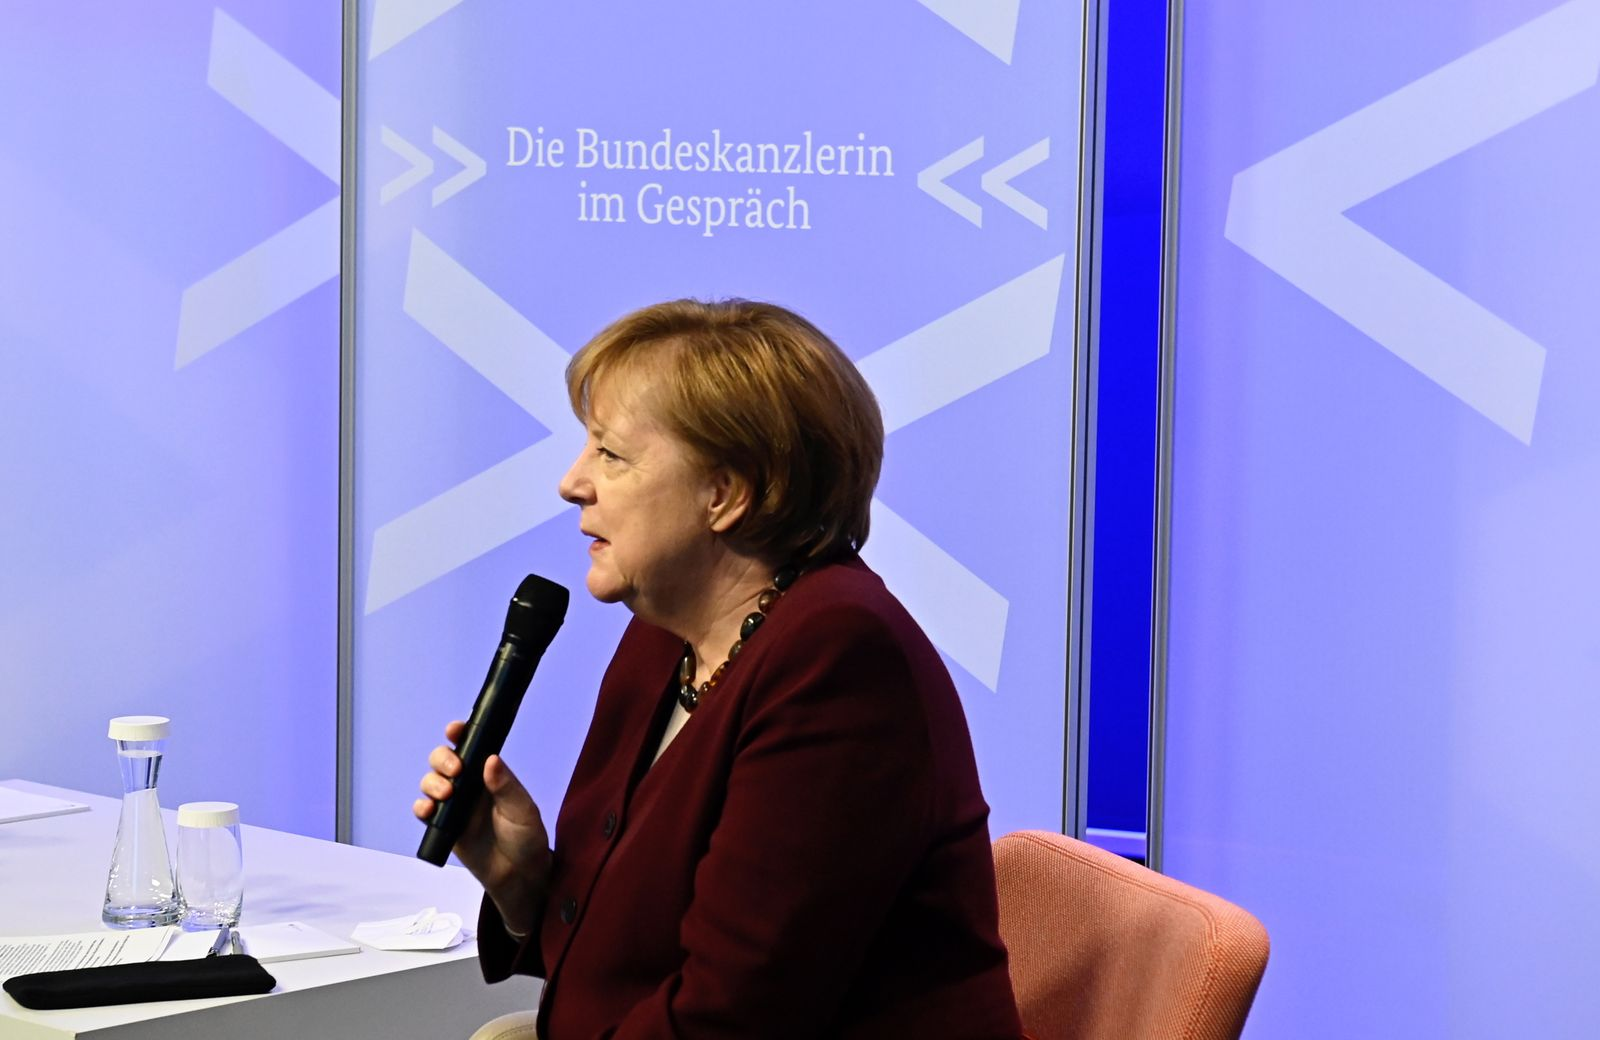 German Chancellor Angela Merkel holds online dialogue with students, Berlin, Germany - 15 Dec 2020